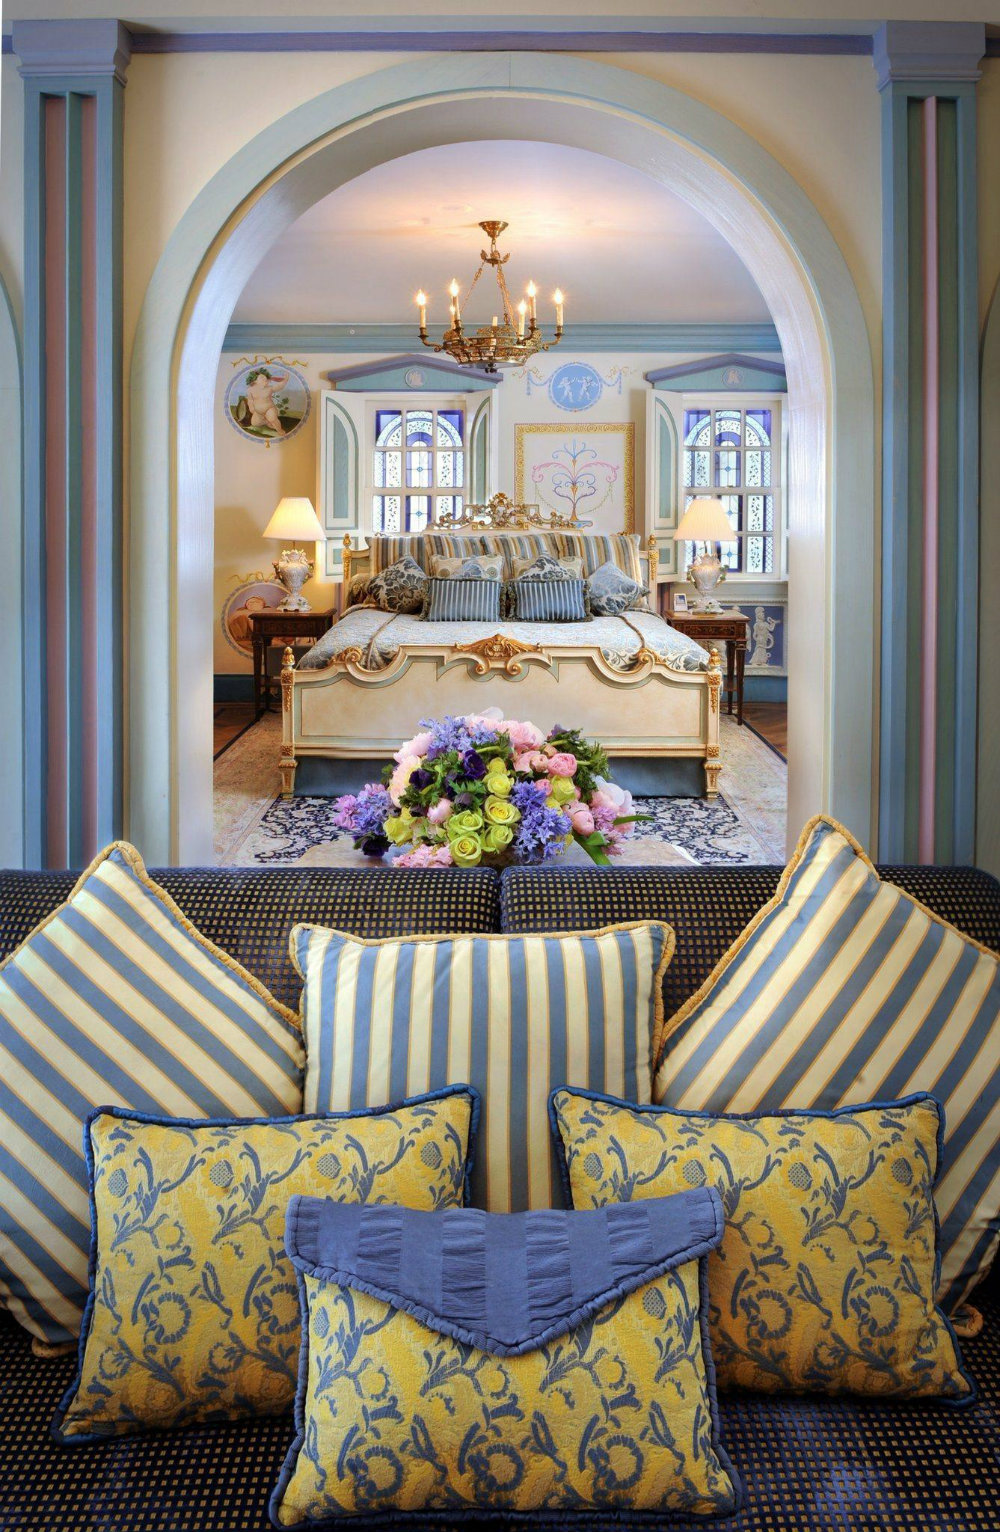 luxury hotel Gianni Vesace Miami Mansion Is Now A Luxury Hotel Gianni Vesace Miami Mansion Is Now A Luxury Hotel 06